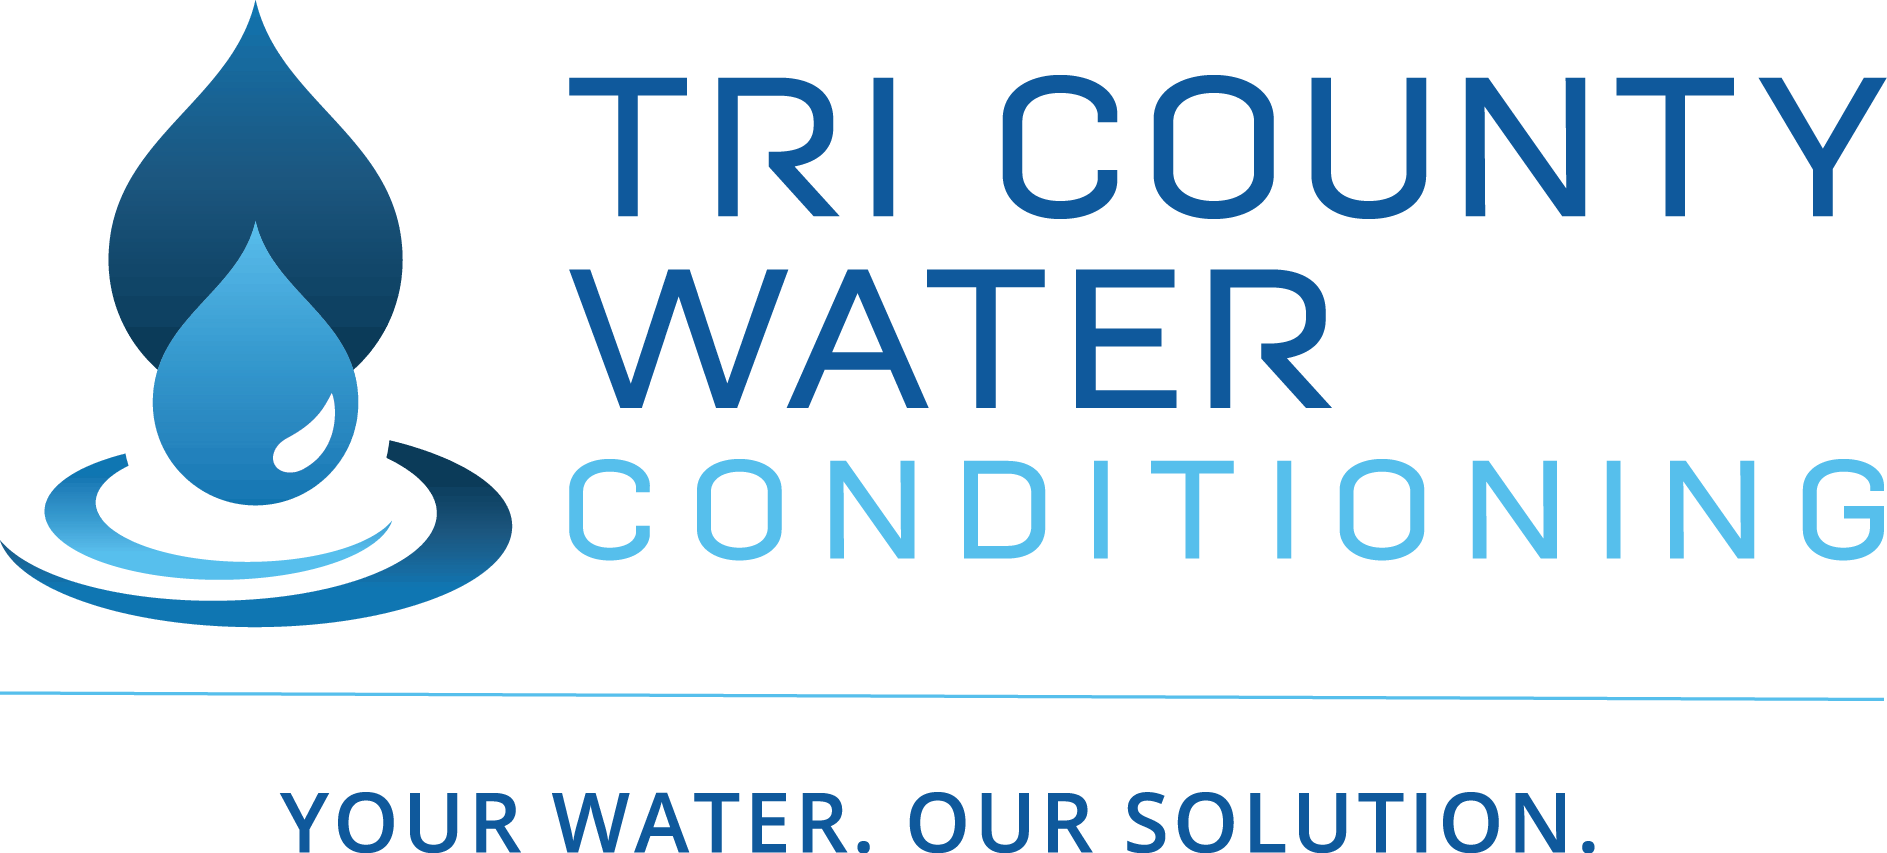 Tri County Water Conditioning Logo